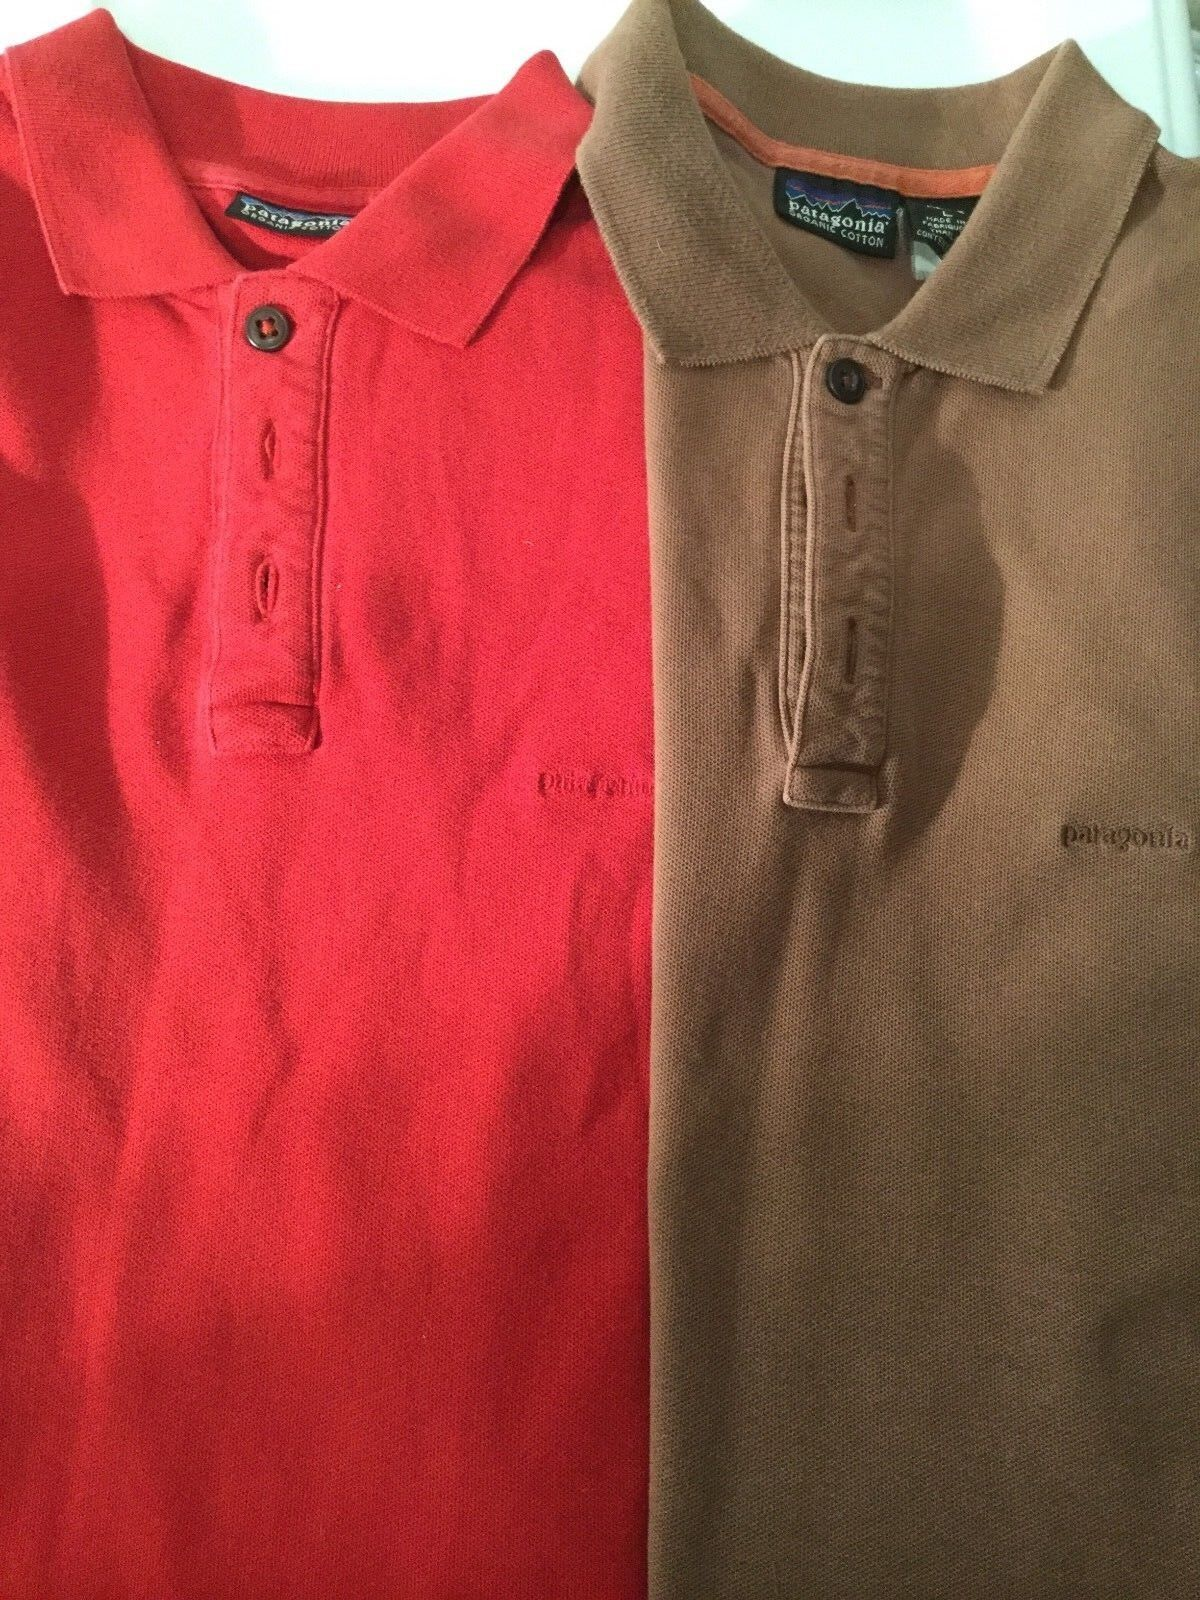 Patagonia Lot Organic Cotton Two Mens Polo Shirts Short Sleeve Red Brown 0258